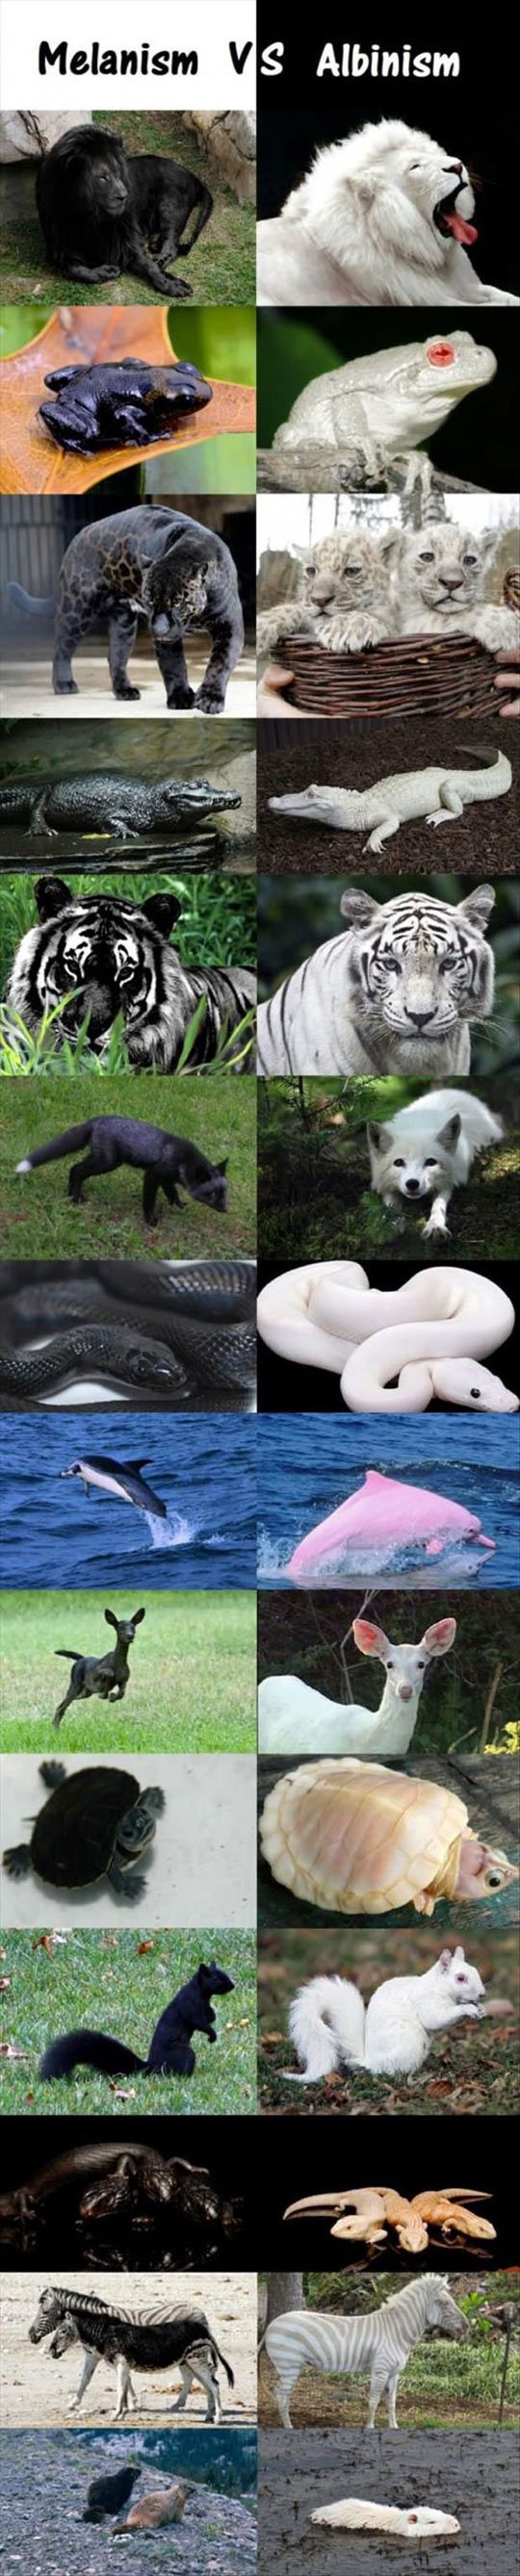 ughhhh albanism is NOT the same as leucisim. the lions and tigers and any other animal that is completly white with BLUE eyes is leucistic and if the animal is all white with RED eyes then and only then is it considered an albino. thank you.